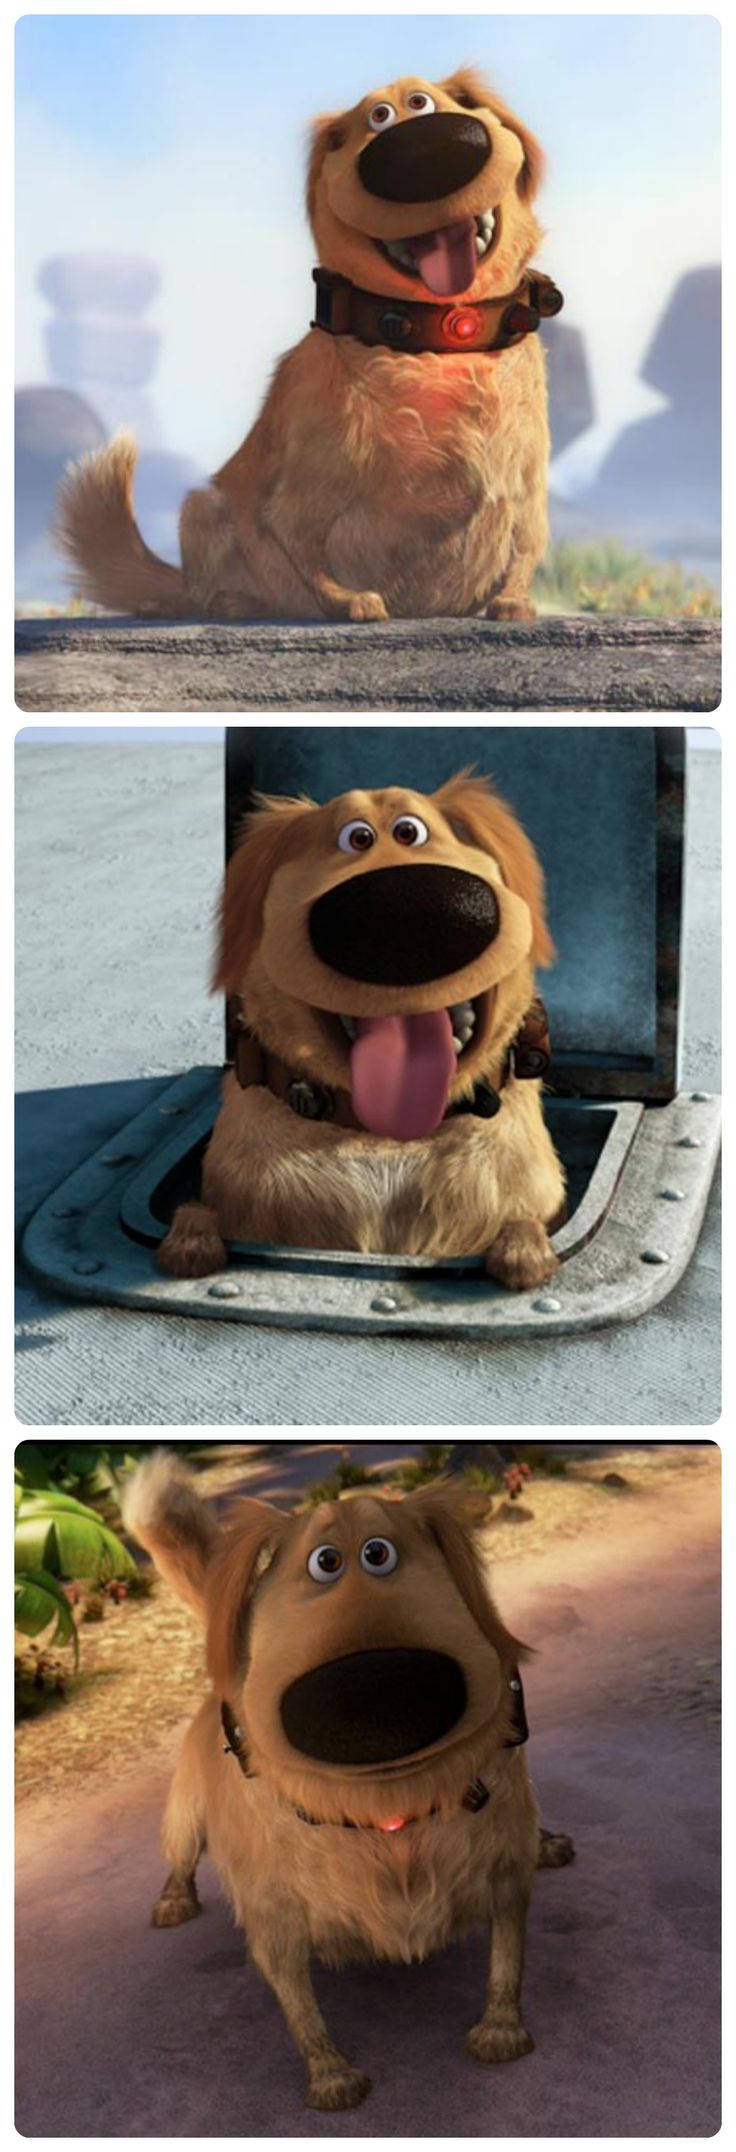 I got Dug! This is funny because out of the Disney dogs- I like him the best anyway! Which Disney Dog Are You?